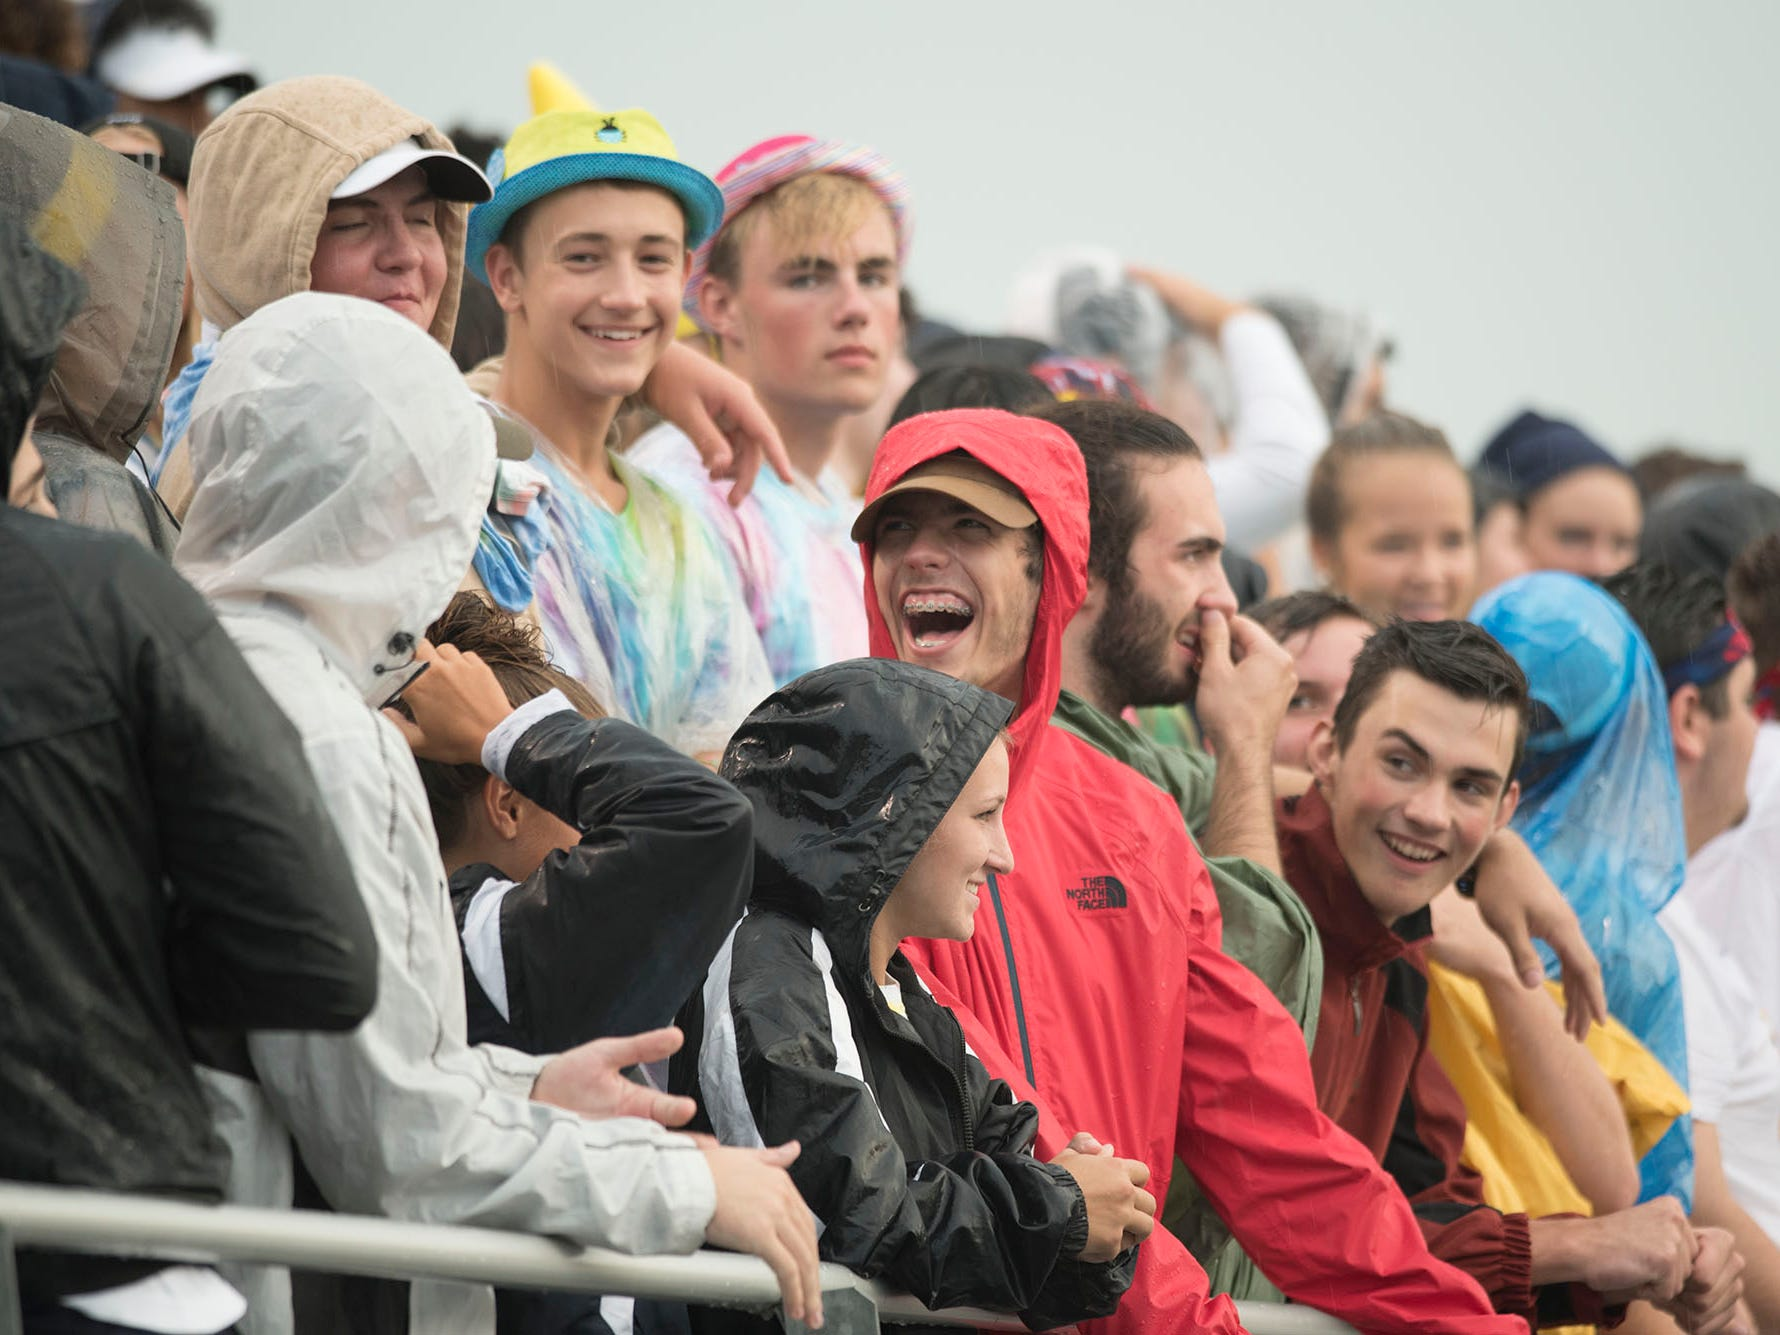 Trojan fans are ready for action during early rain. Chambersburg defeated Red Lion 28-19 in PIAA football on Friday, Sept. 7, 2018.